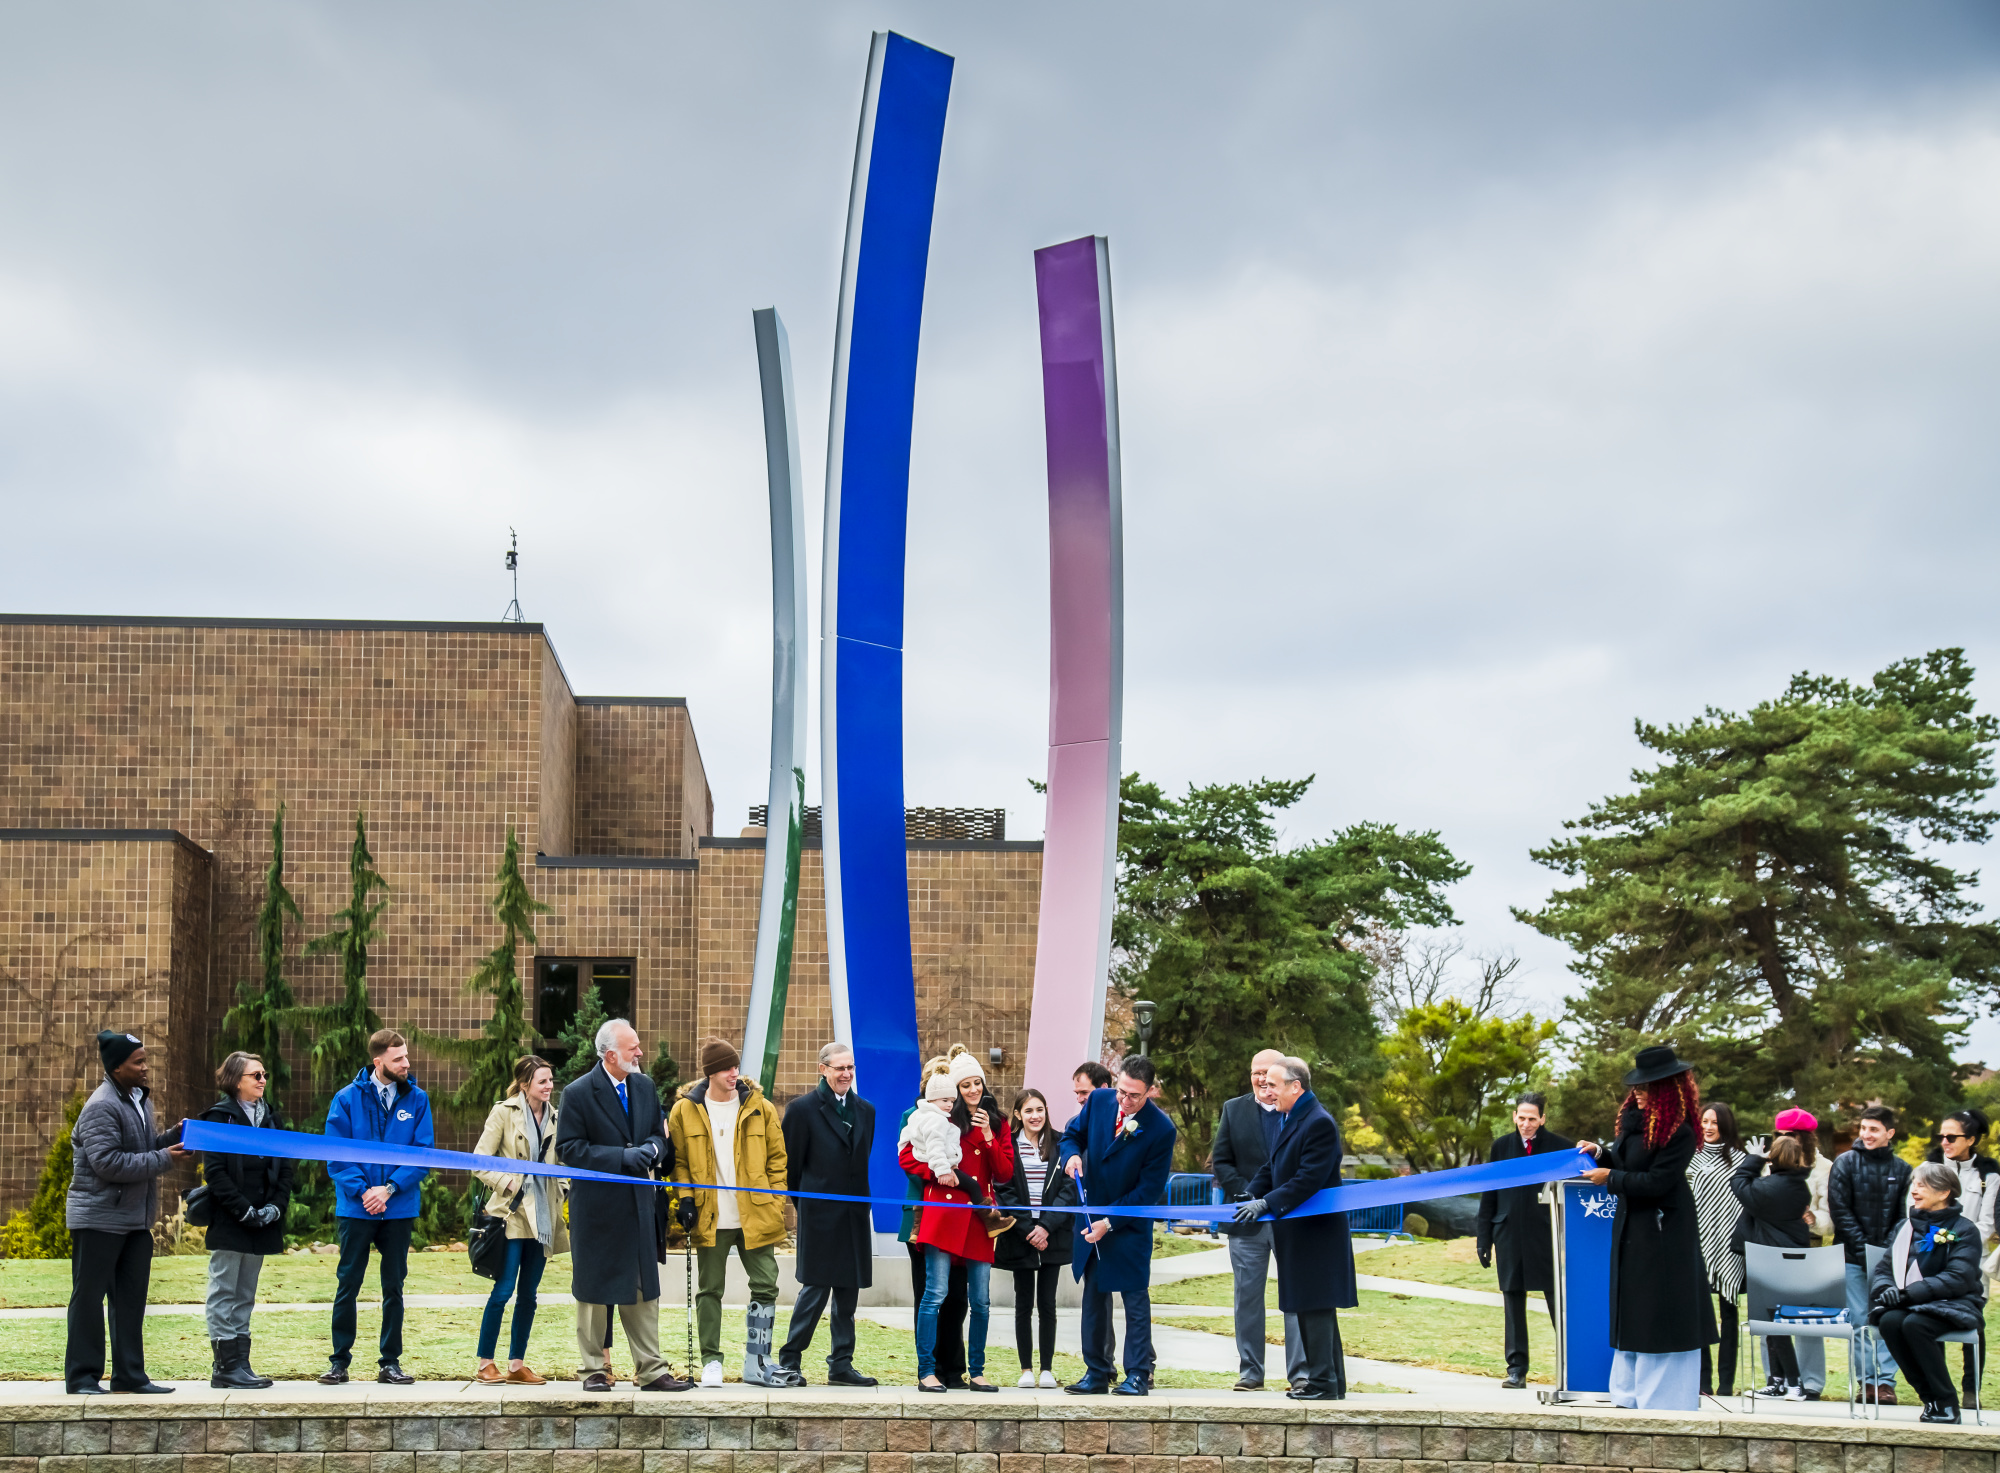 LCC Trustee Andrew Abood, surrounded by his family and other trustees, cuts the ribbon on the Upward Bound sculpture.